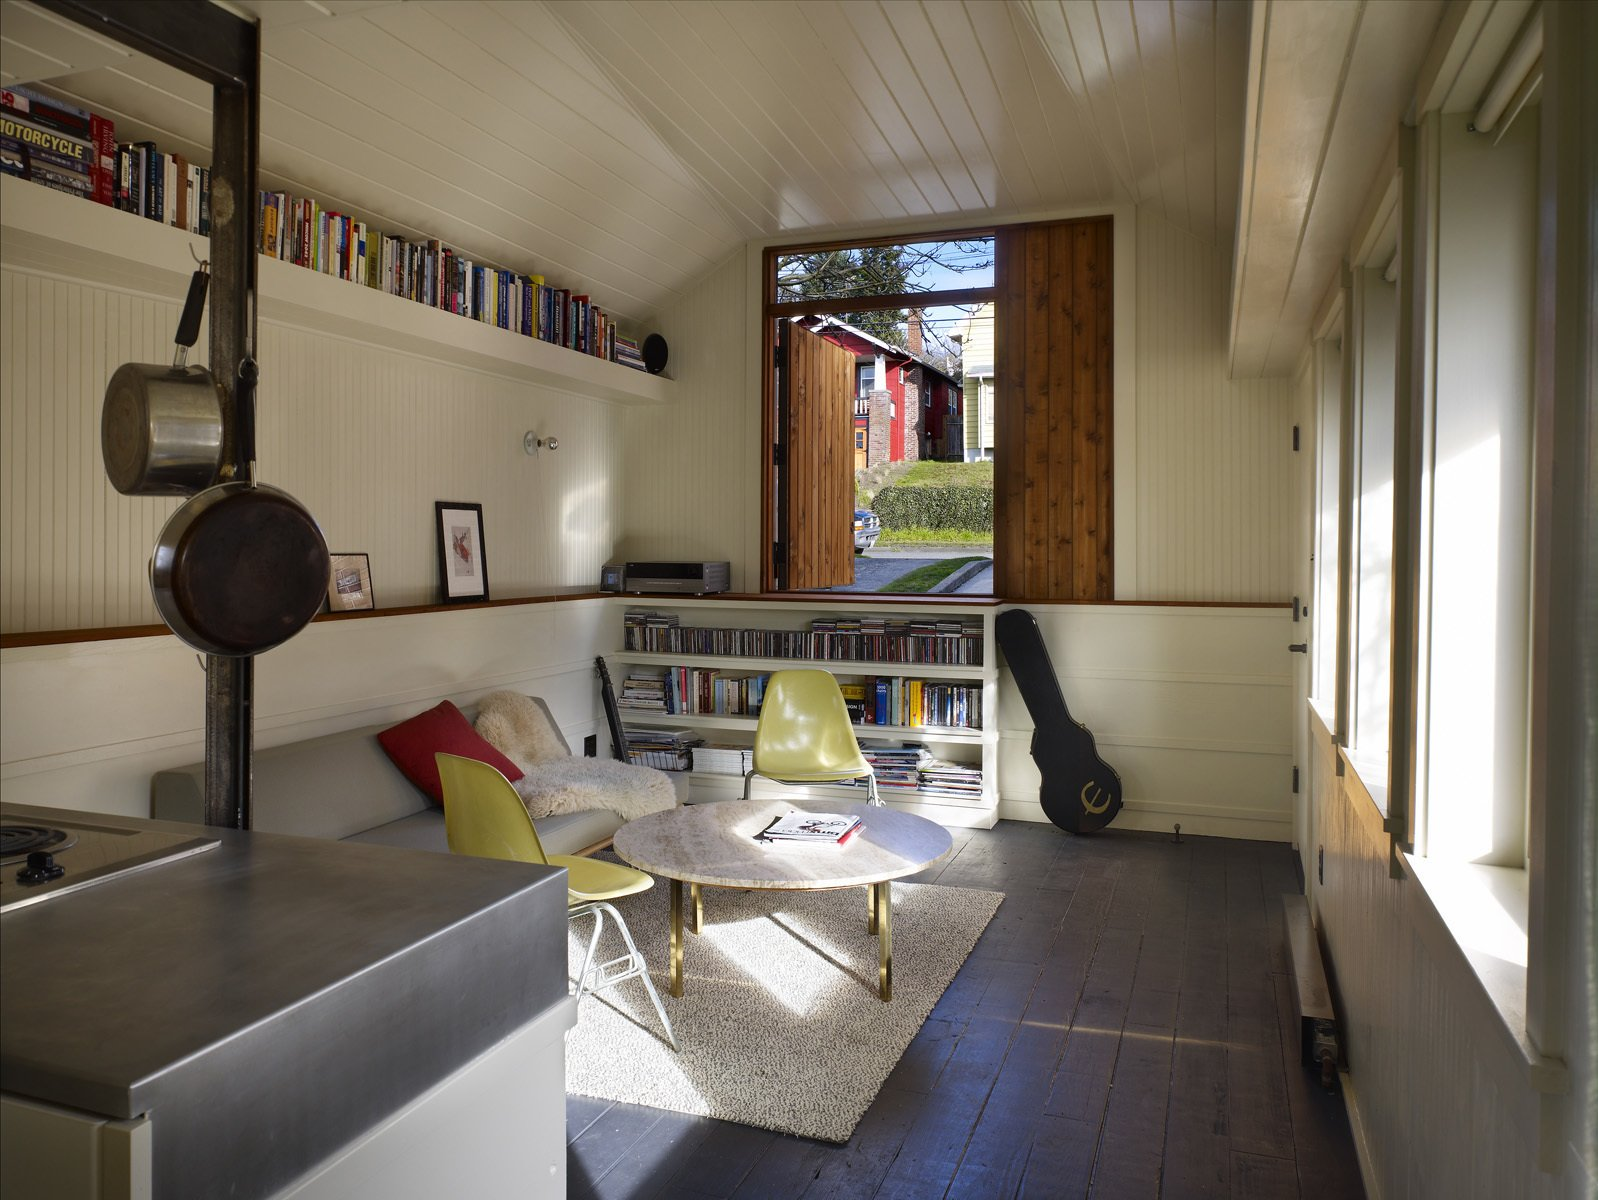 """Shed & Studio and Storage Space Room Type The compact rental features plenty of wooden ledges, nooks, and shelves for keeping belongings organized. In the living room, a low white wall is capped with fir wood salvaged from the garage's former posts. On the east wall, a half-door made of reclaimed cedar looks out on a garden.  """"It looks and lives a lot bigger than it is,"""" Schaer says.  Photo 5 of 8 in Tiny 1920s Garage Transformed Into a Charming Studio"""